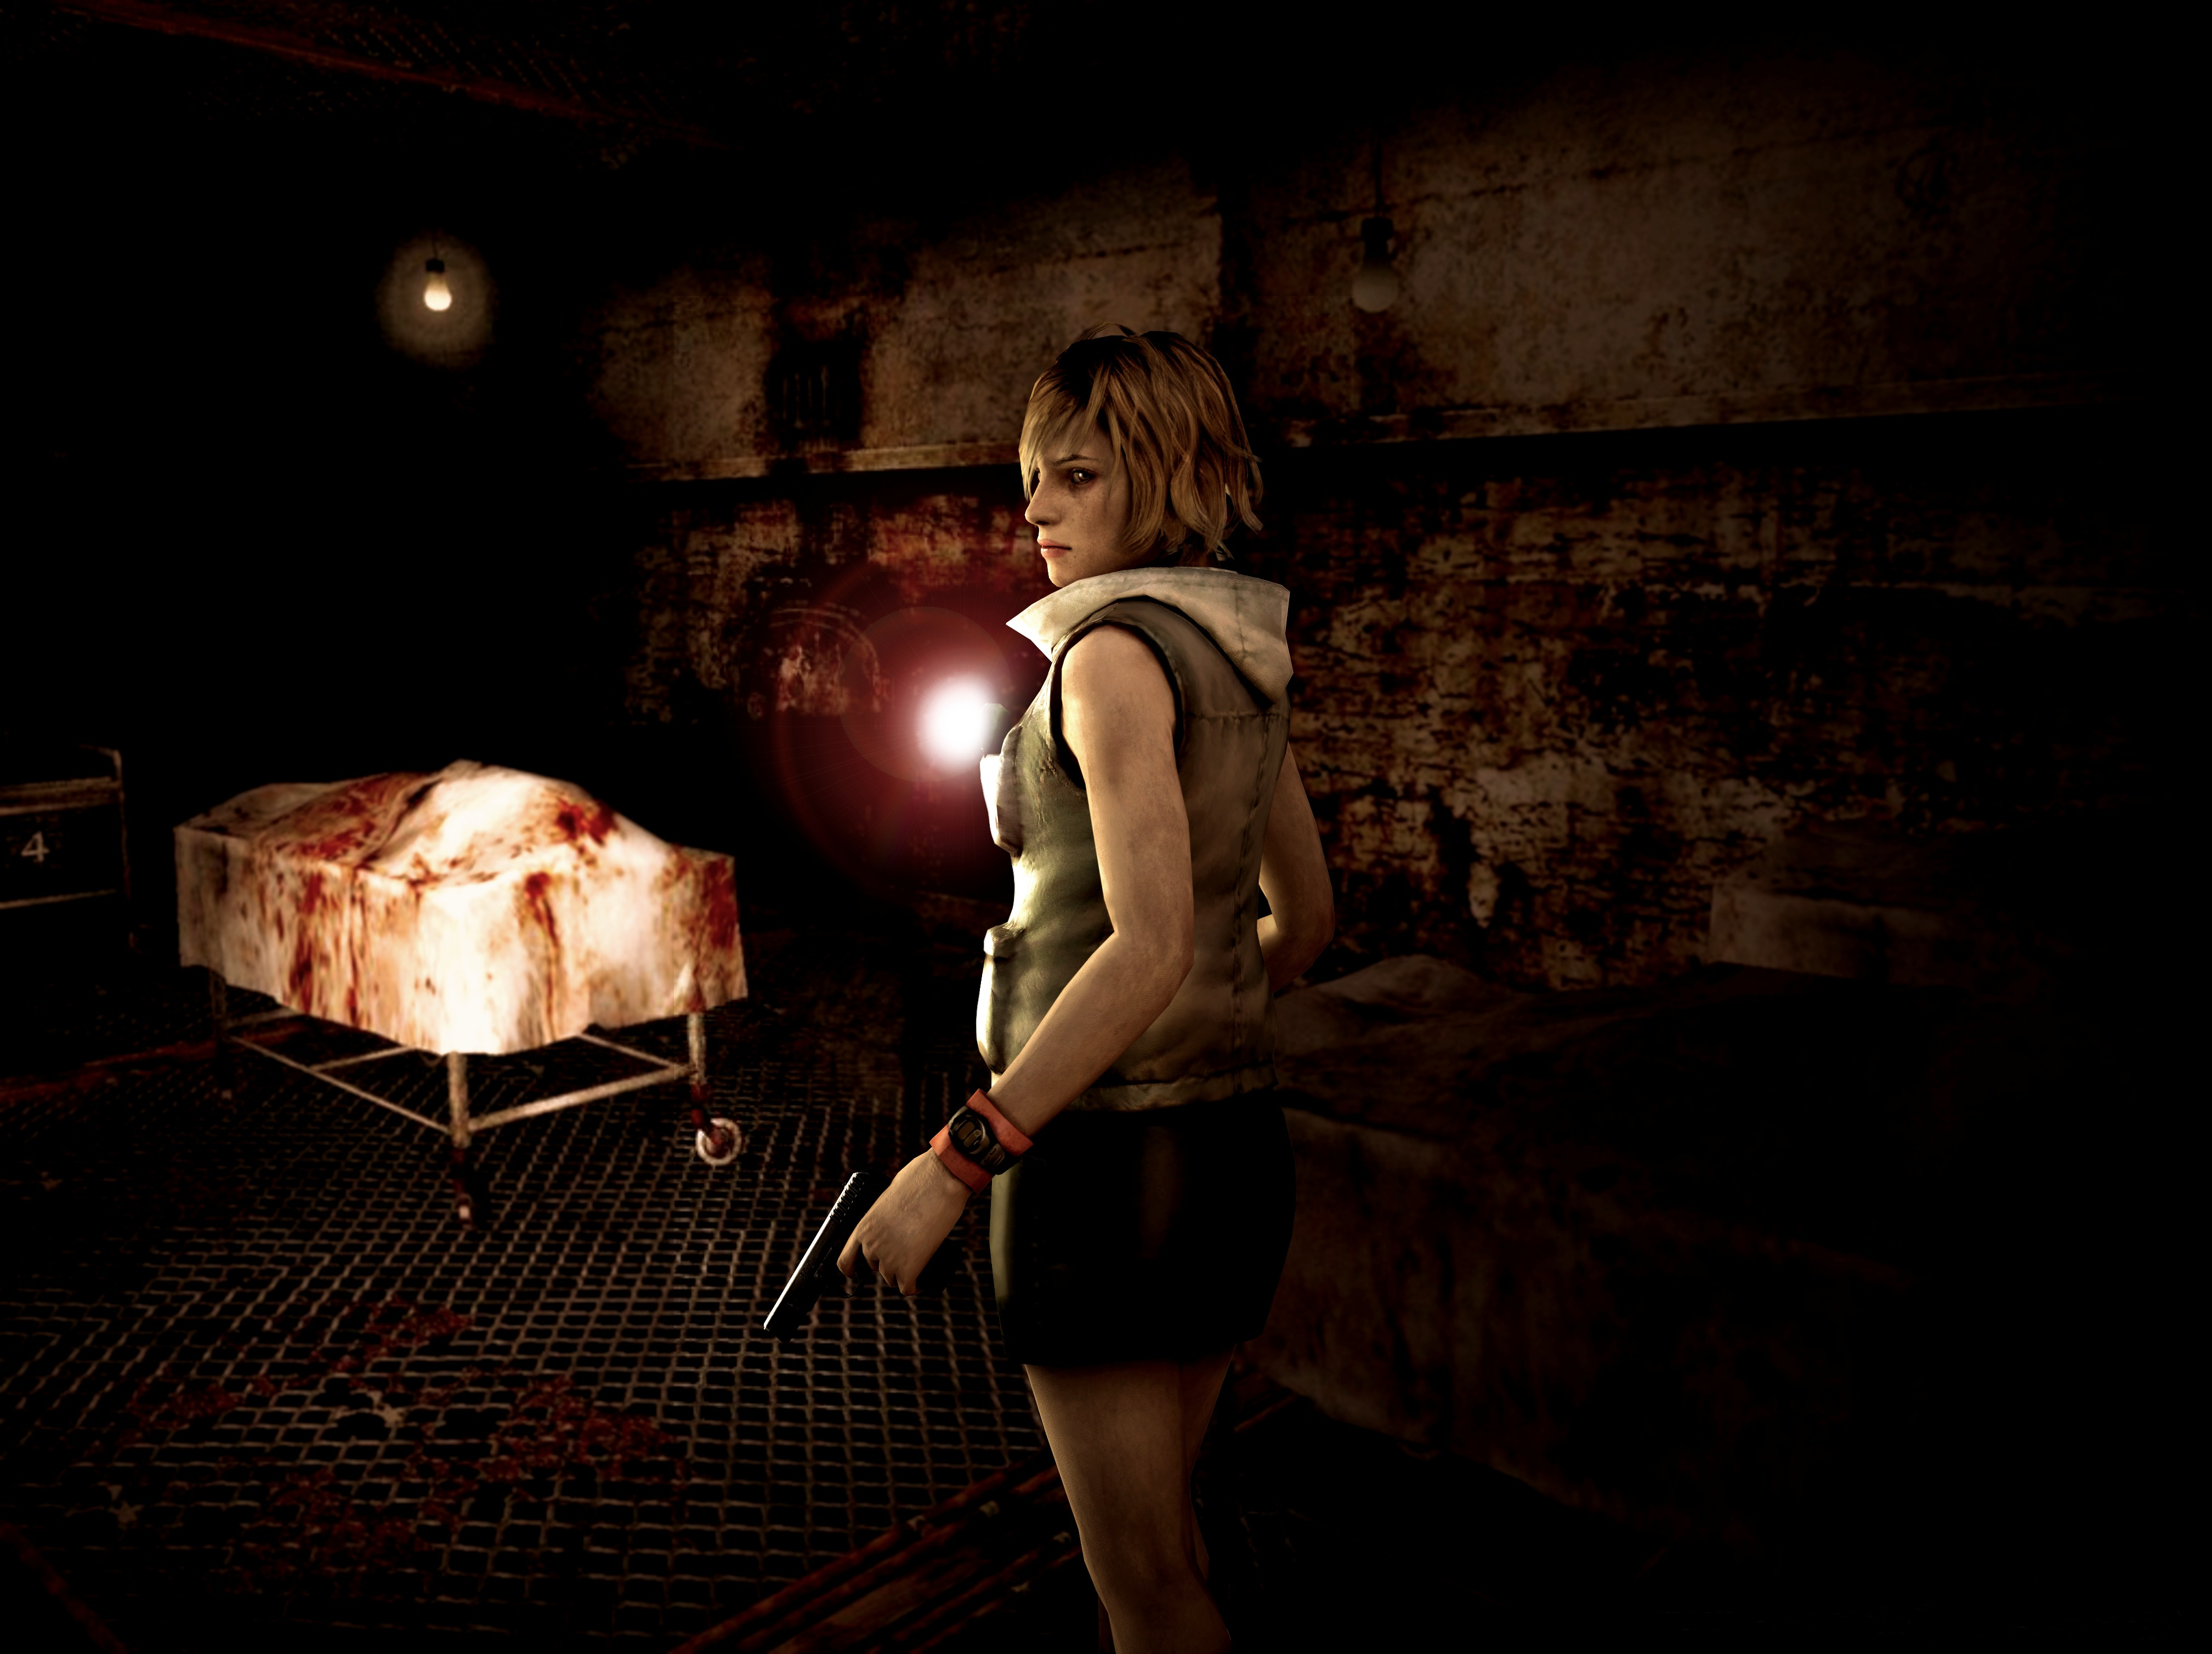 heather mason fan art silent hill 3 wallpapers photos pictures 1680x1050